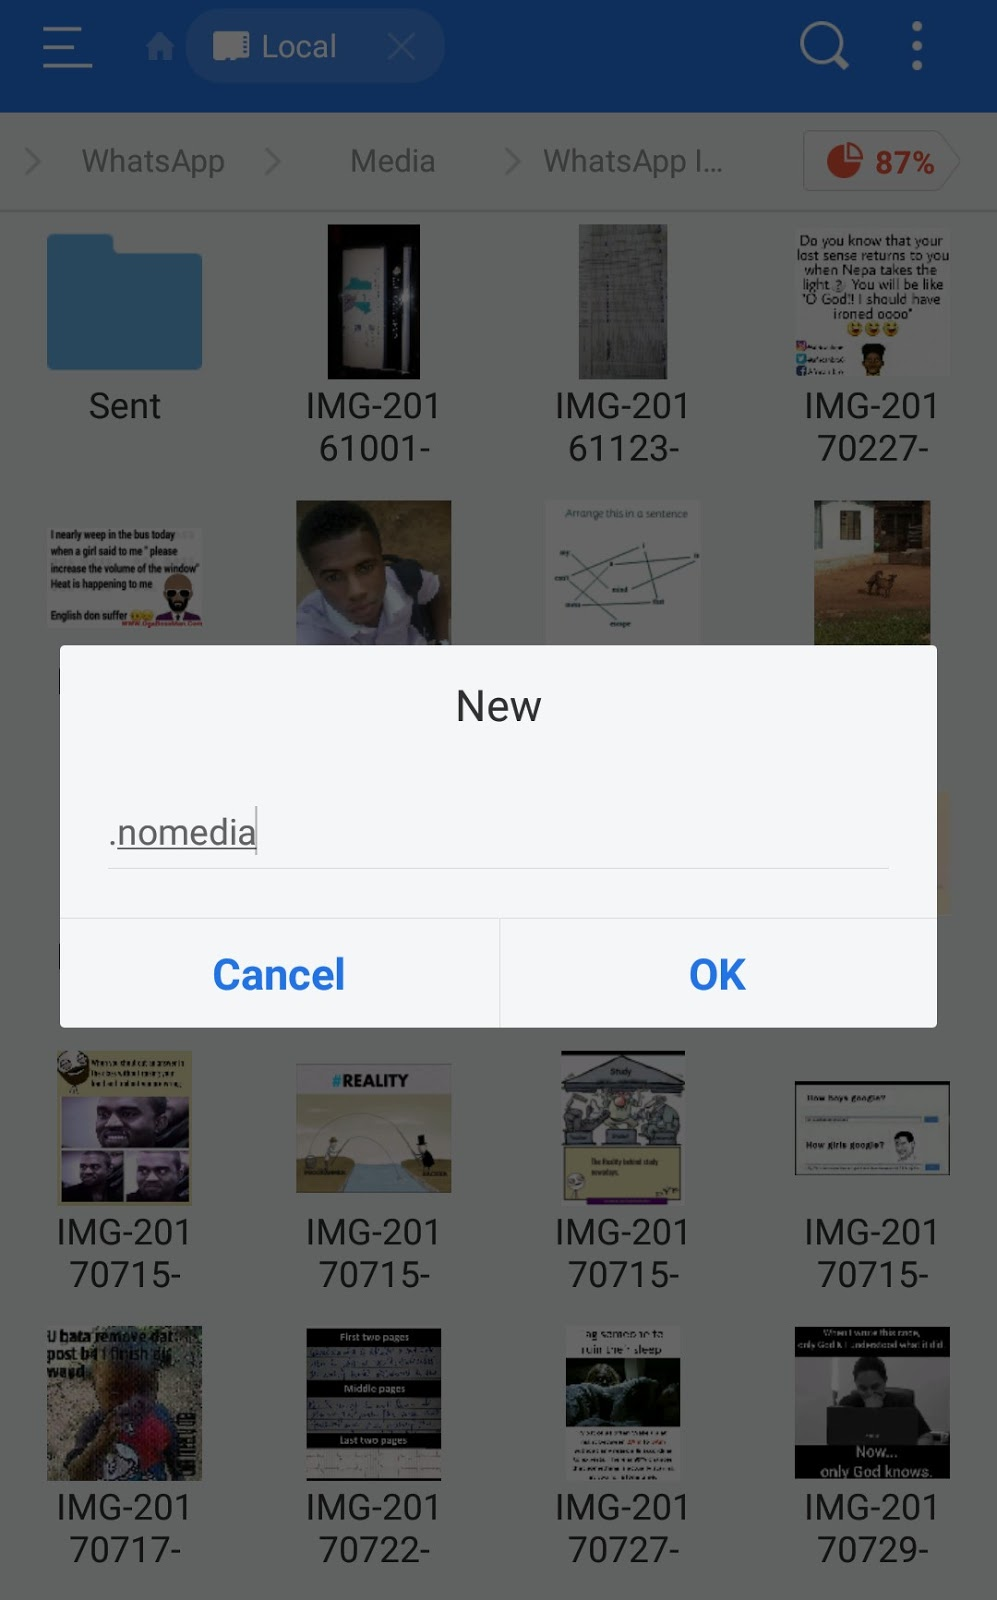 creating the nomedia file